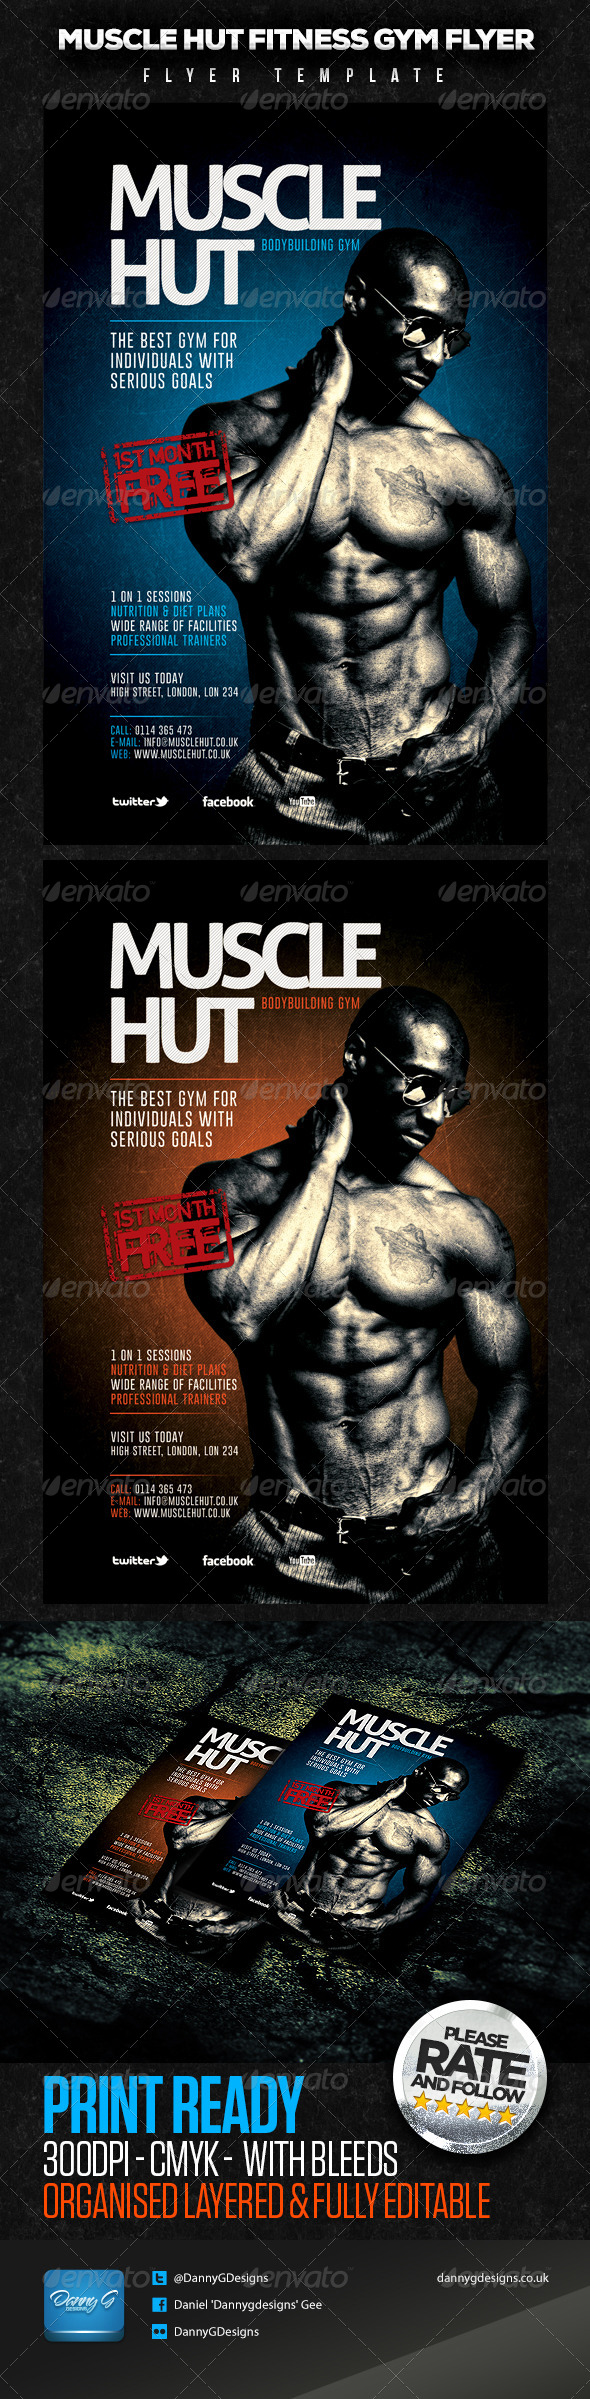 Muscle Hut Bodybuilding/Fitness Flyer Template  - Sports Events